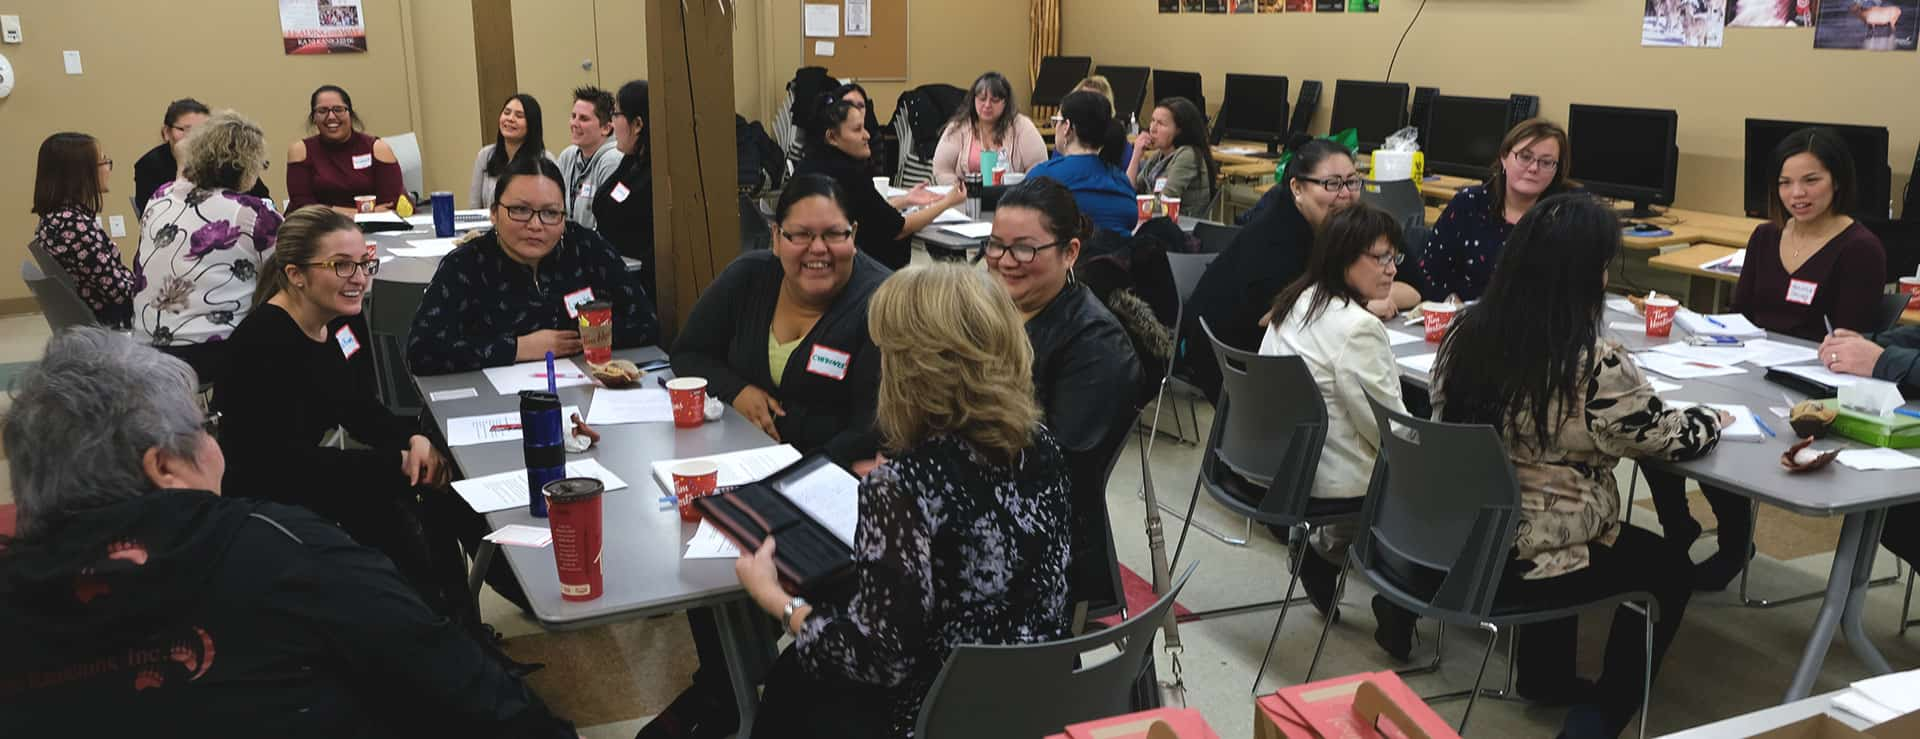 Employers meet with job-training participants in conversation circles.